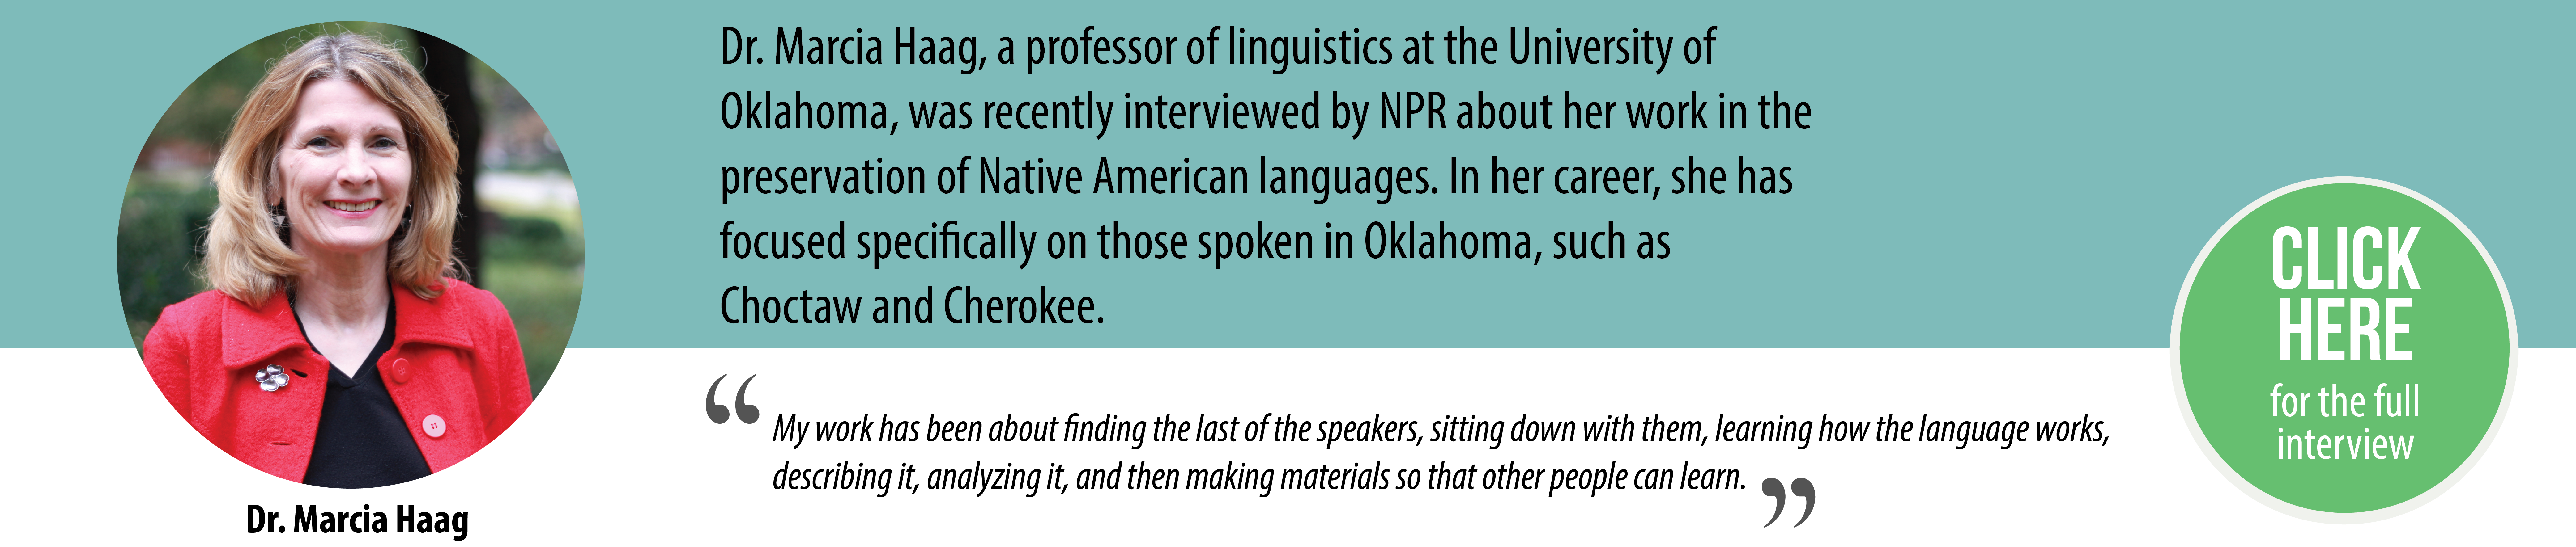 Dr. Marcia Haag, a professor of linguistics at the University of Oklahoma, was recently interviewed by NPR about her work in the preservation of Native American languages. In her career, she has focused specifically on those spoken in Oklahoma, such Choctaw and Cherokee.